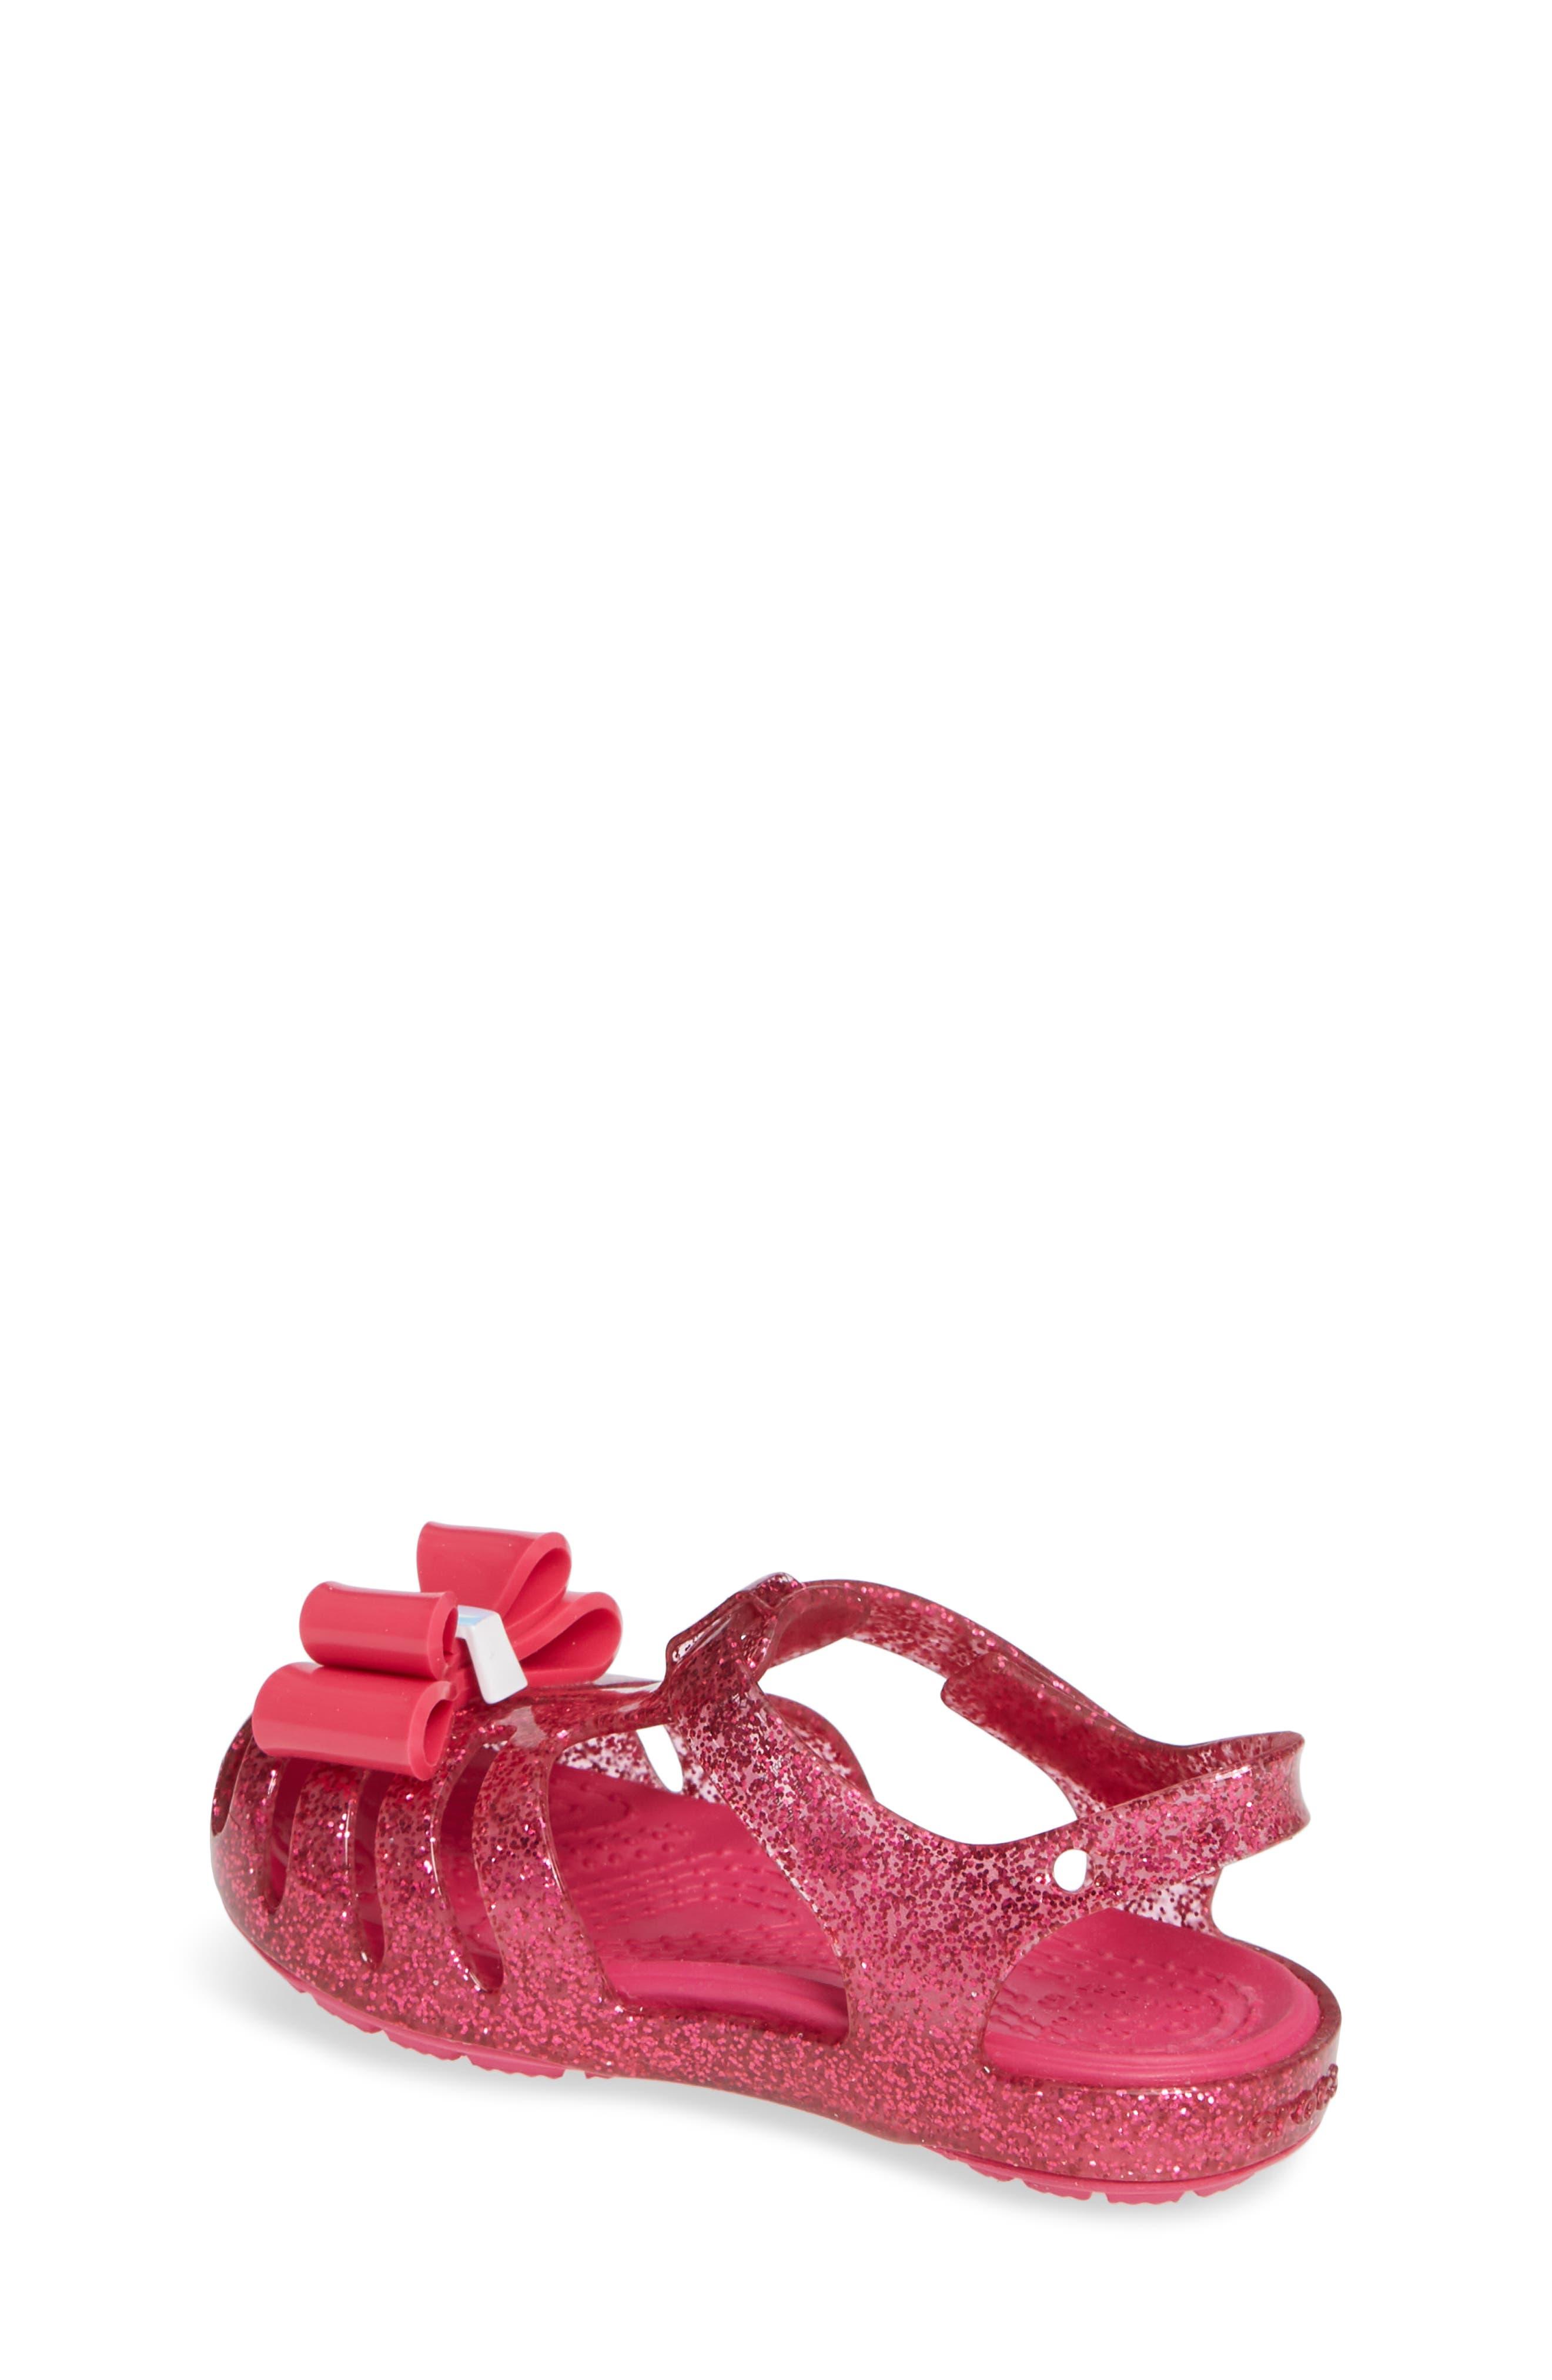 Isabella Bow Glitter Fisherman Sandal,                             Alternate thumbnail 2, color,                             Candy Pink